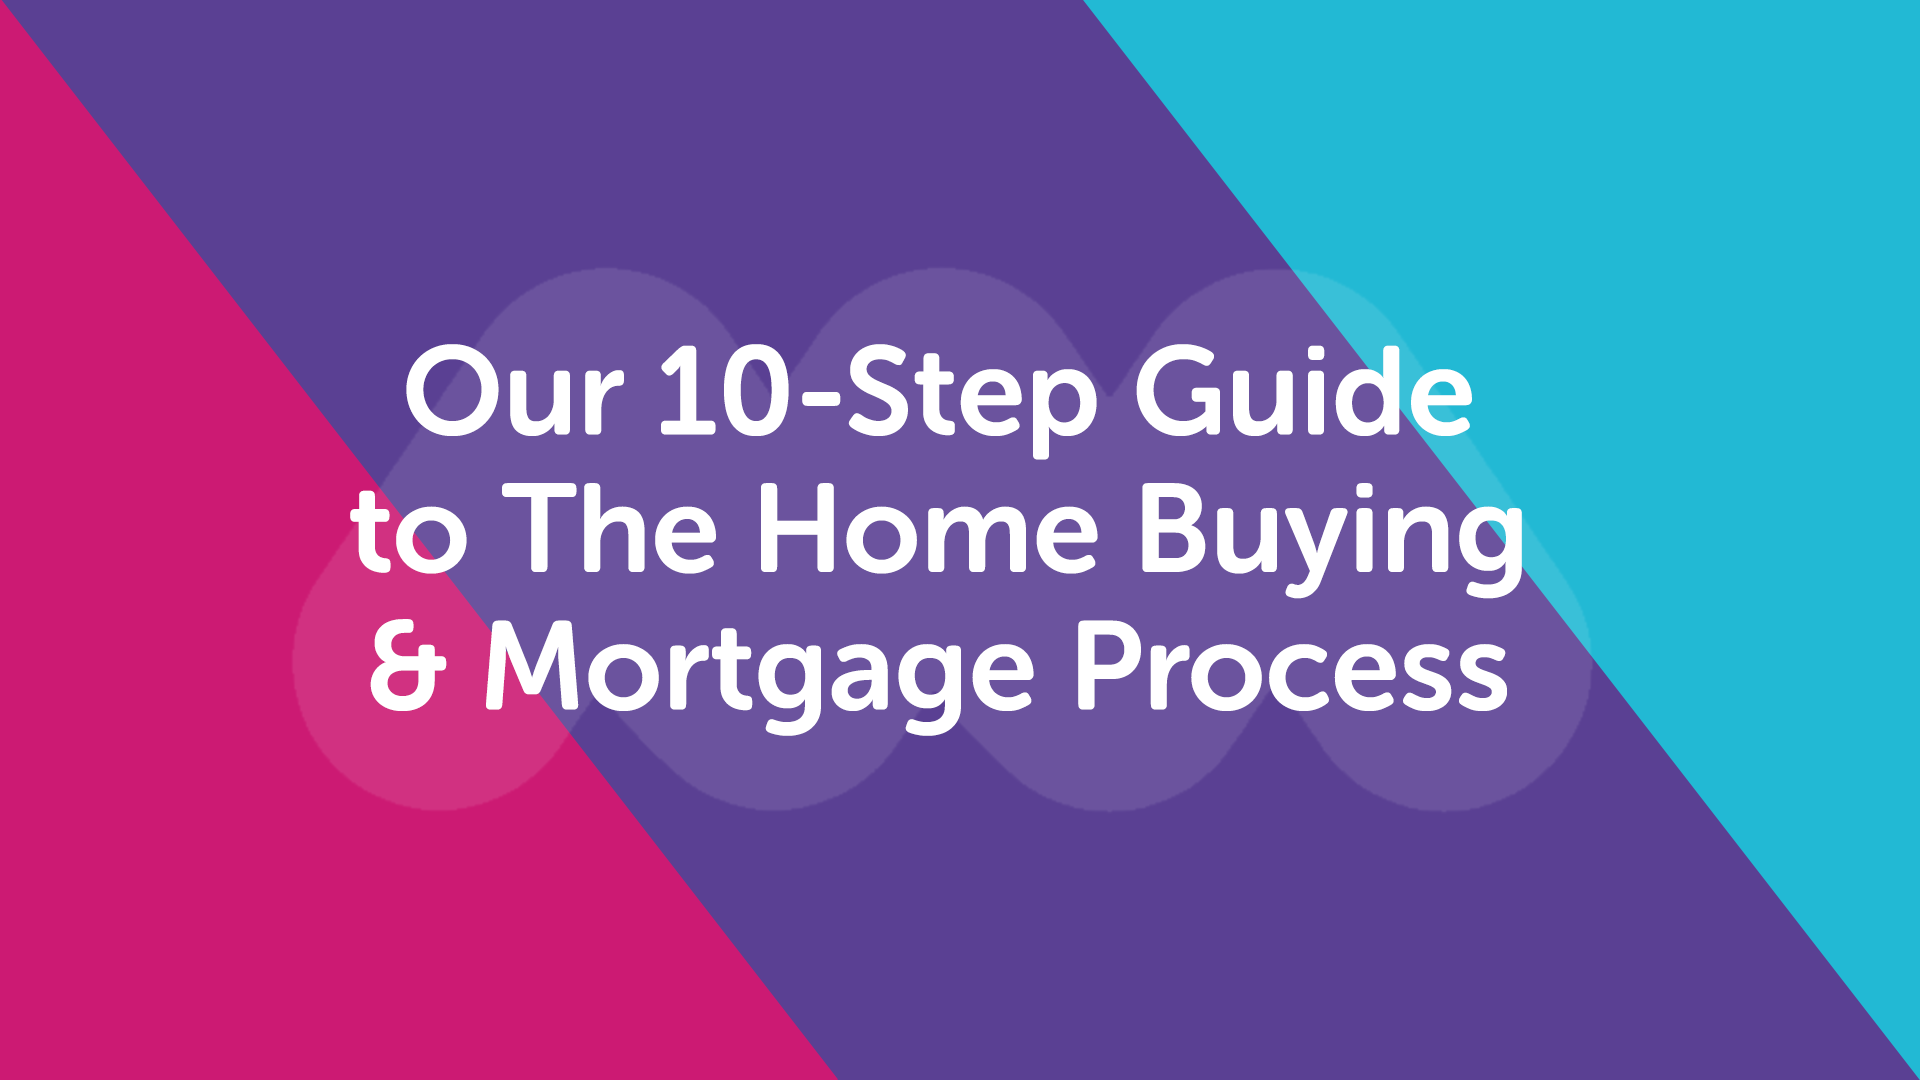 10 Step Mortgage & Home Buying Guide